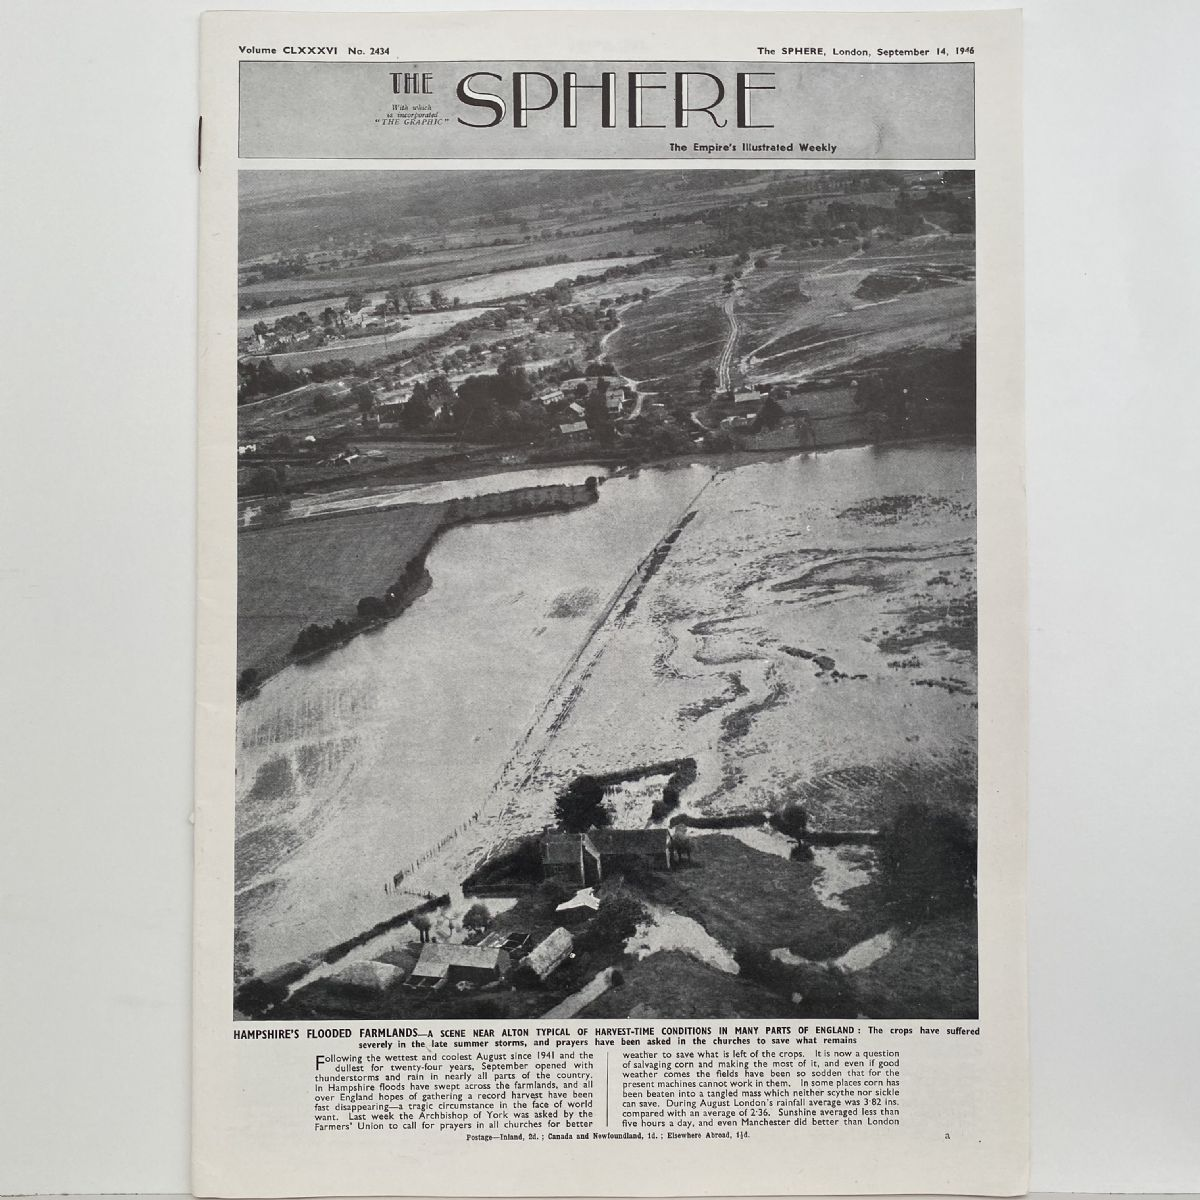 THE SPHERE The Empire's Illustrated Weekly. September 14, 1946. No. 2434